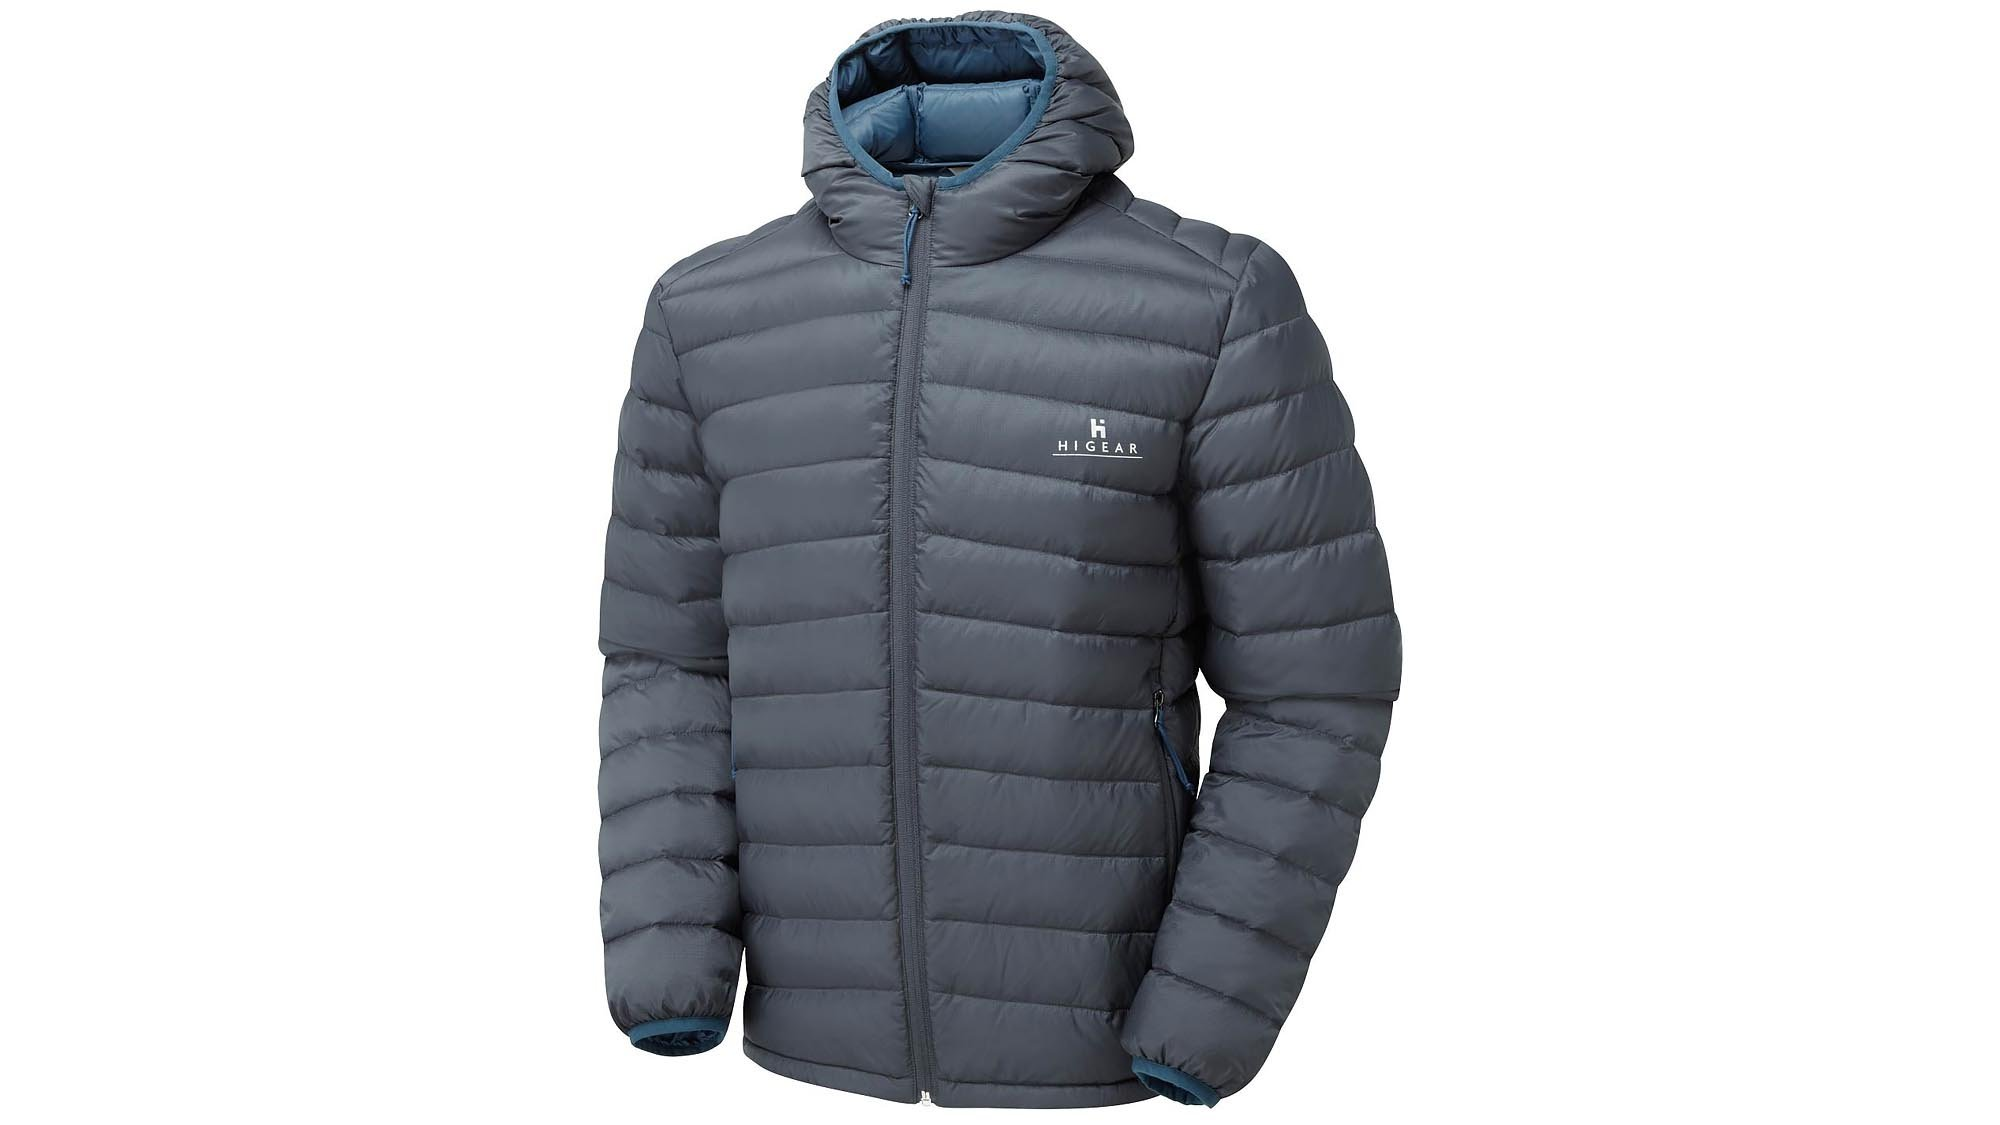 0f50fe810eb1 It might be the cheapest entry on our list but the fill power on this jacket  is impressive